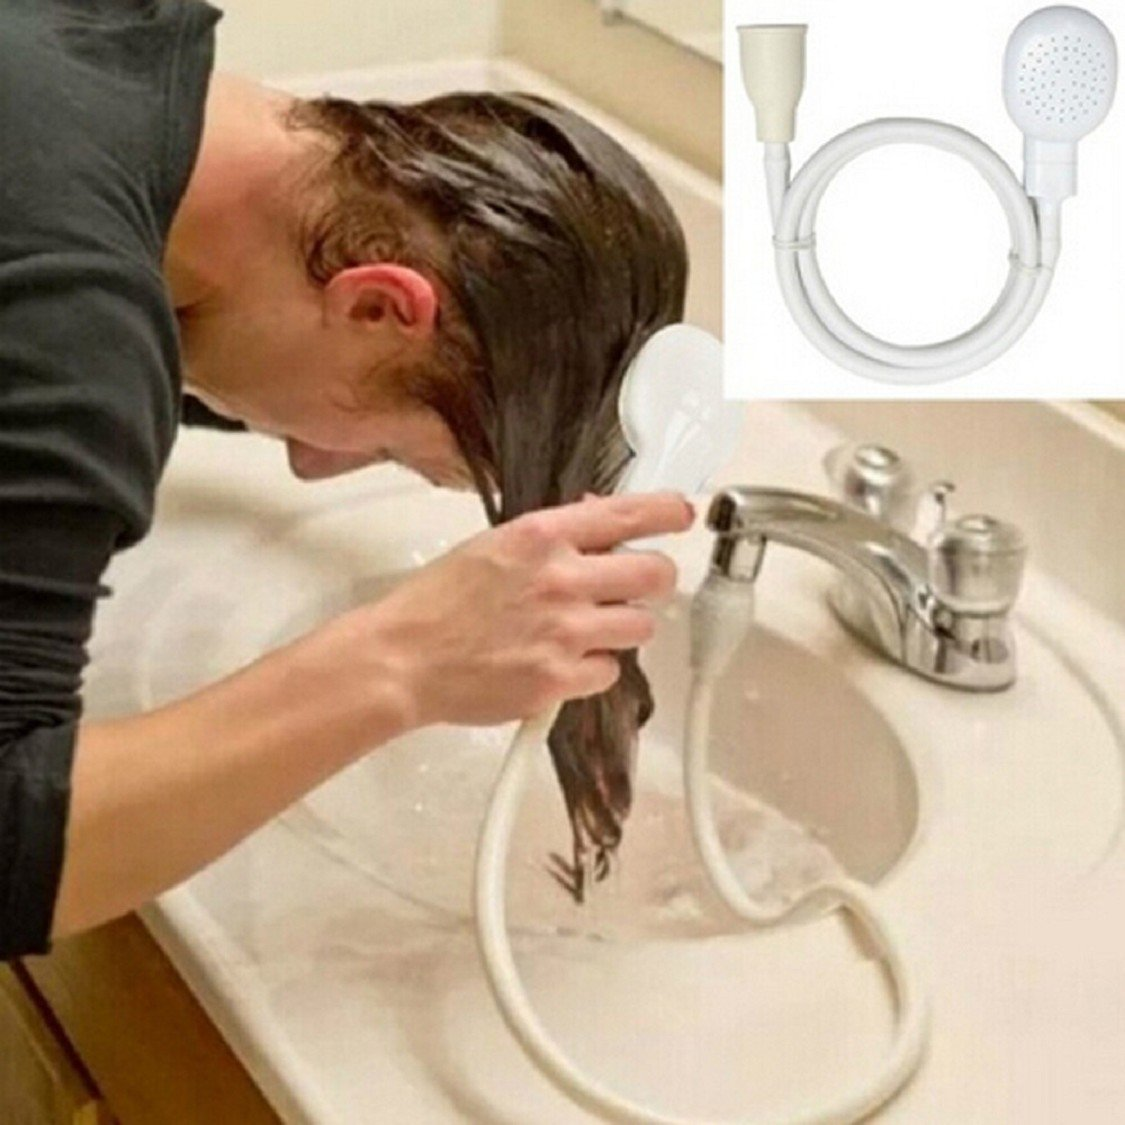 Ikevan Faucet Shower Head Spray Drains Strainer Hose Sink Washing Hair Wash Shower by Ikevan